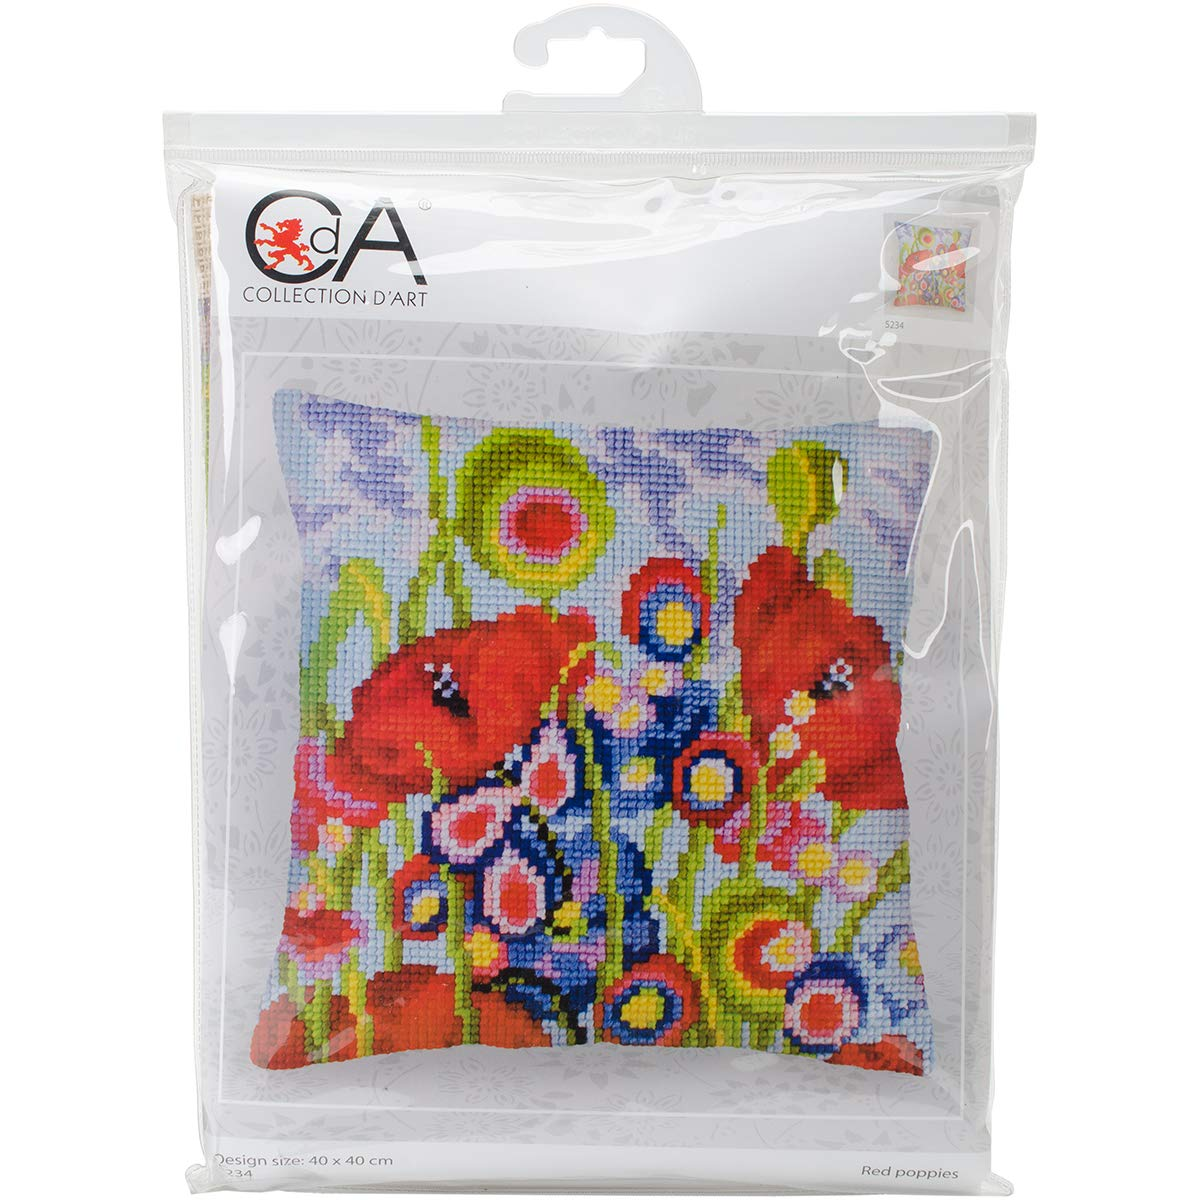 RTORed Poppies II Collection DArt Stamped Needlepoint Cushion Kit 40 x 40cm